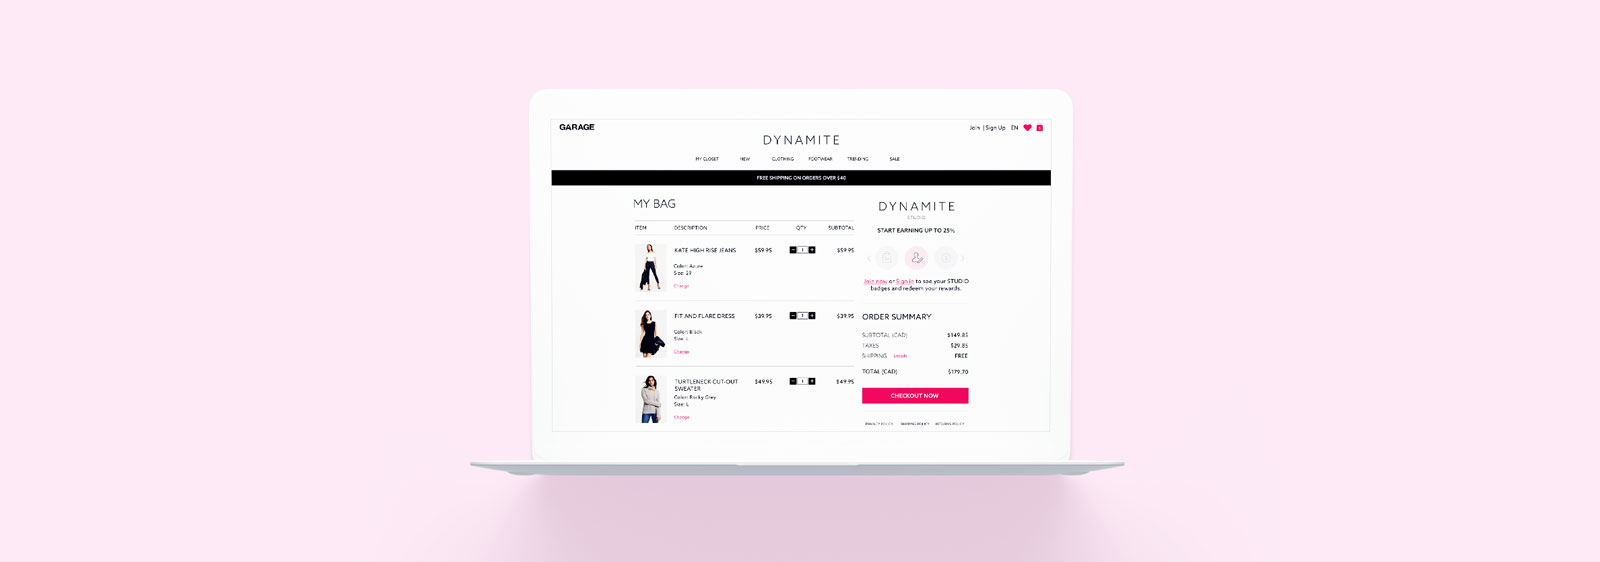 Dynamite eCommerce Checkout design by Noisy Ghost Co.